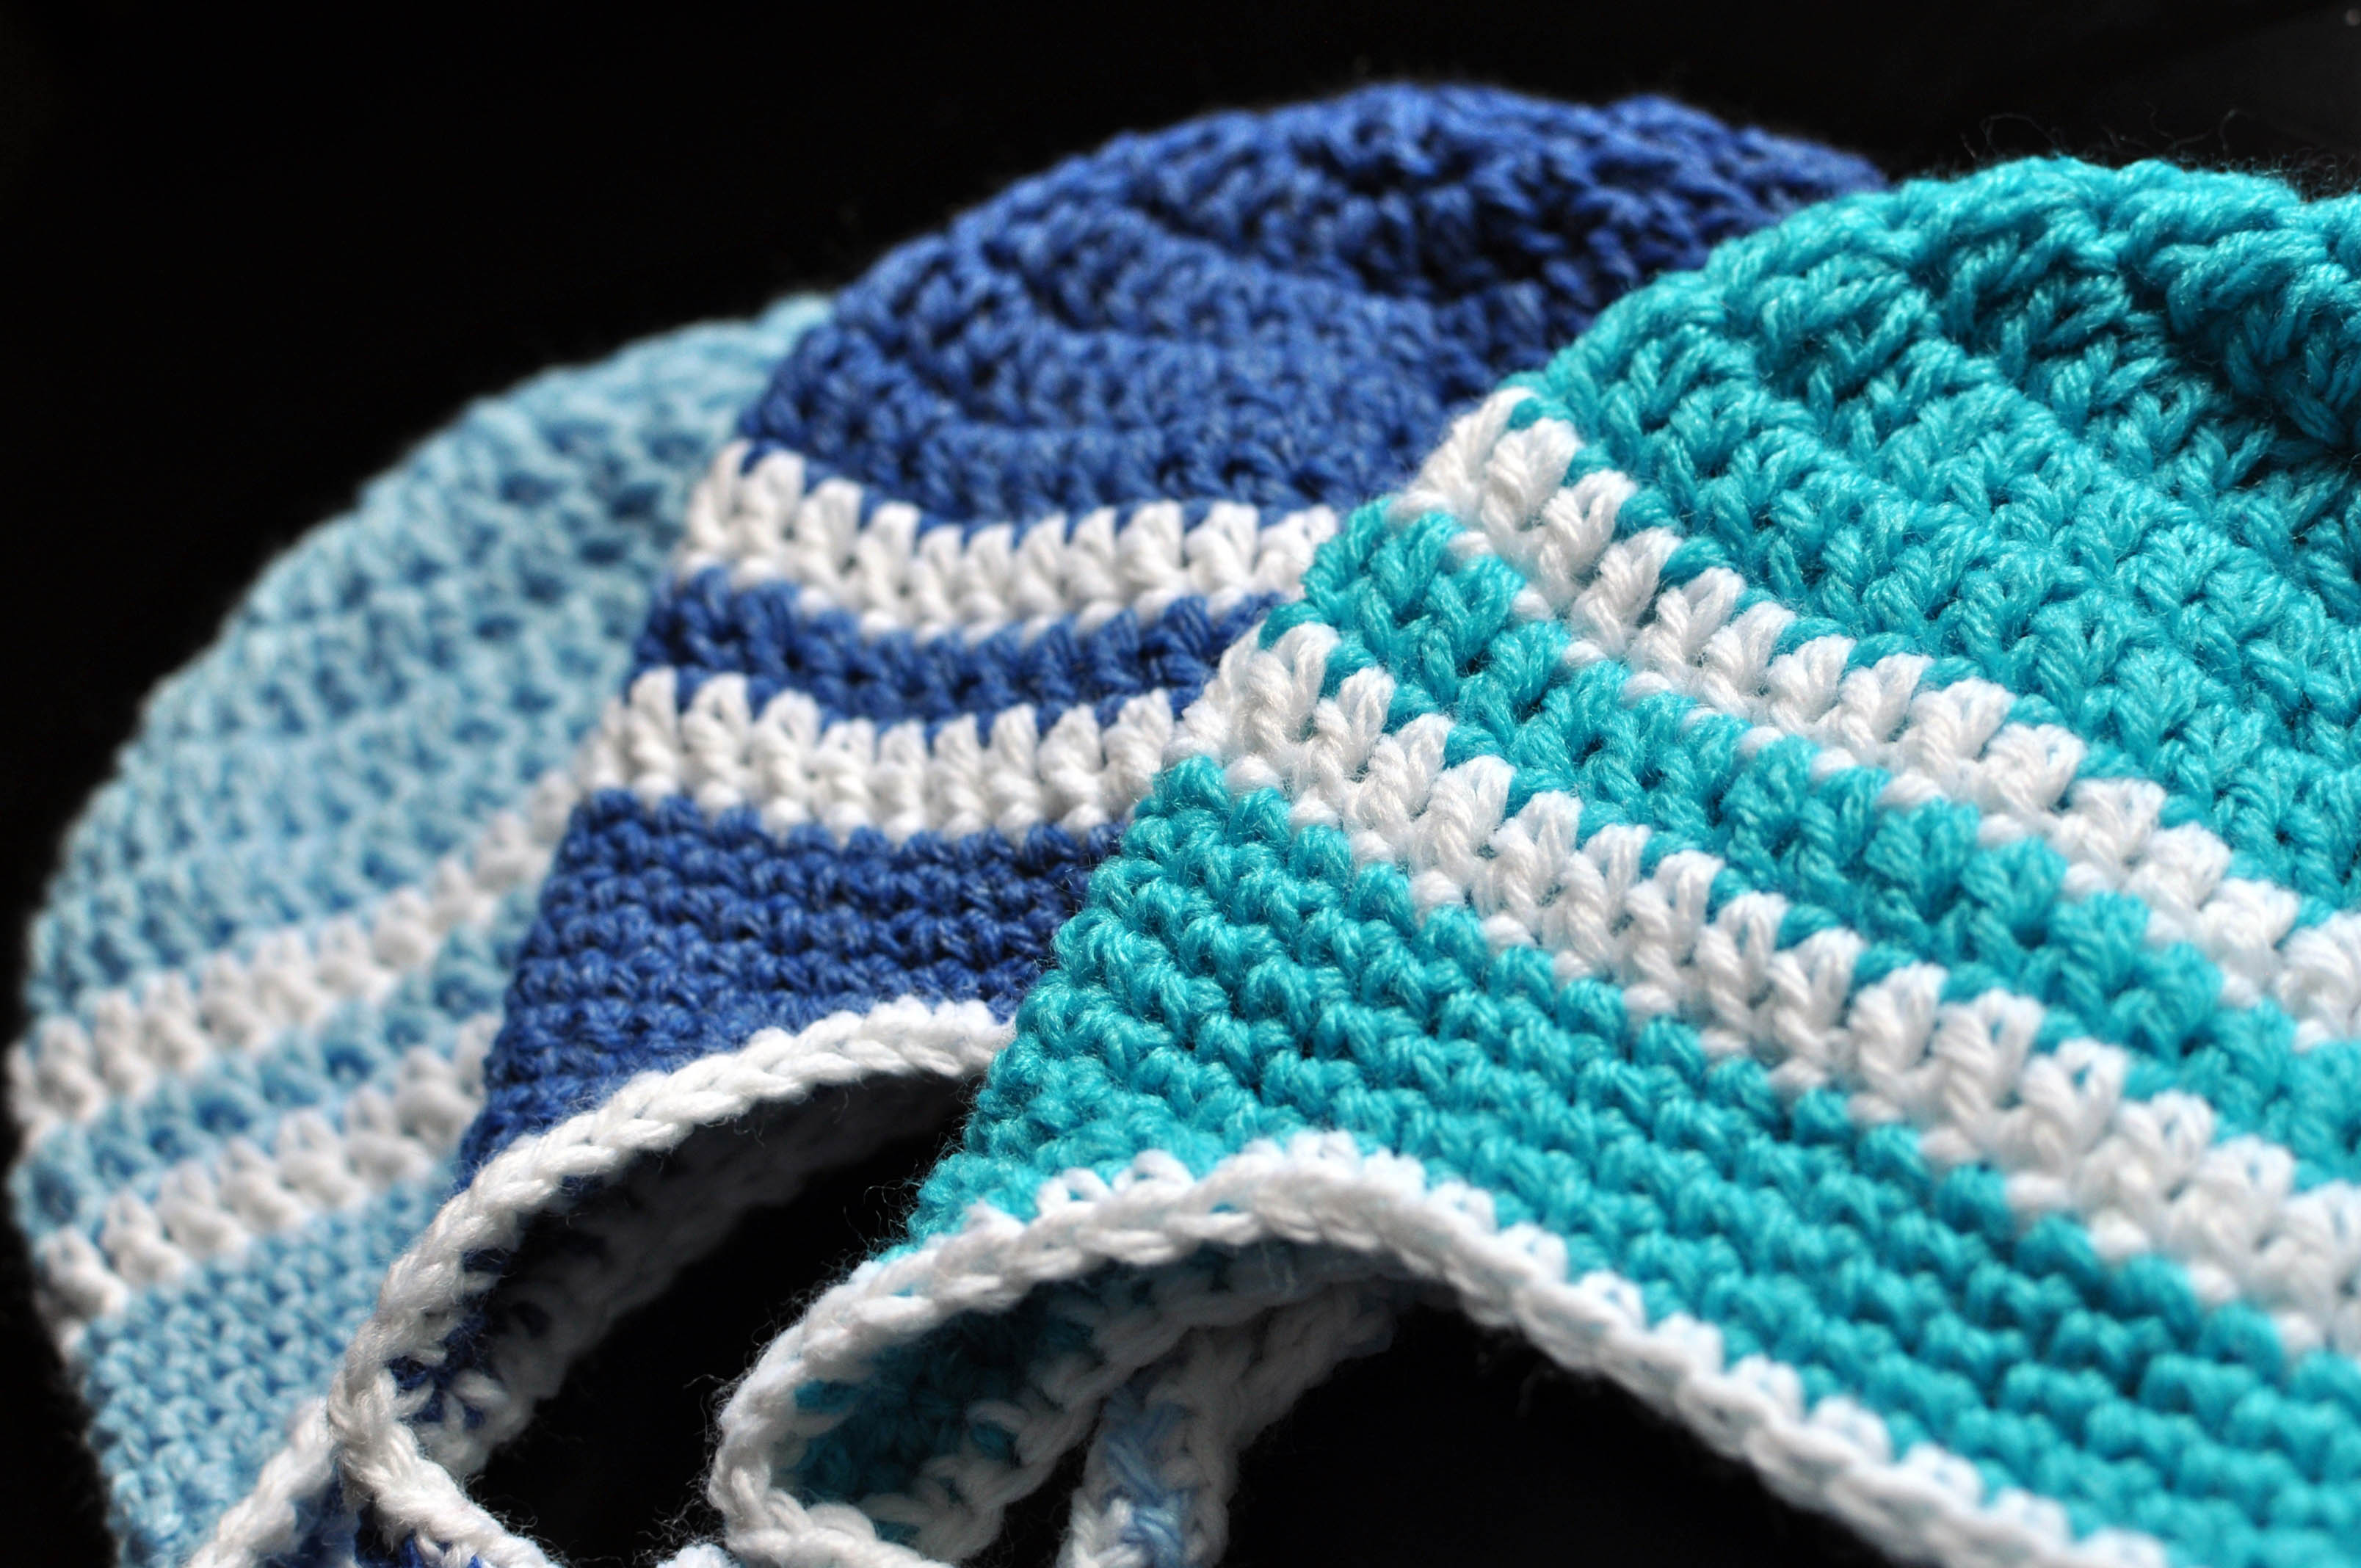 Free Crochet Patterns For Earflap Hats : Free Crochet Pattern: Striped Earflap Hat Classy Crochet